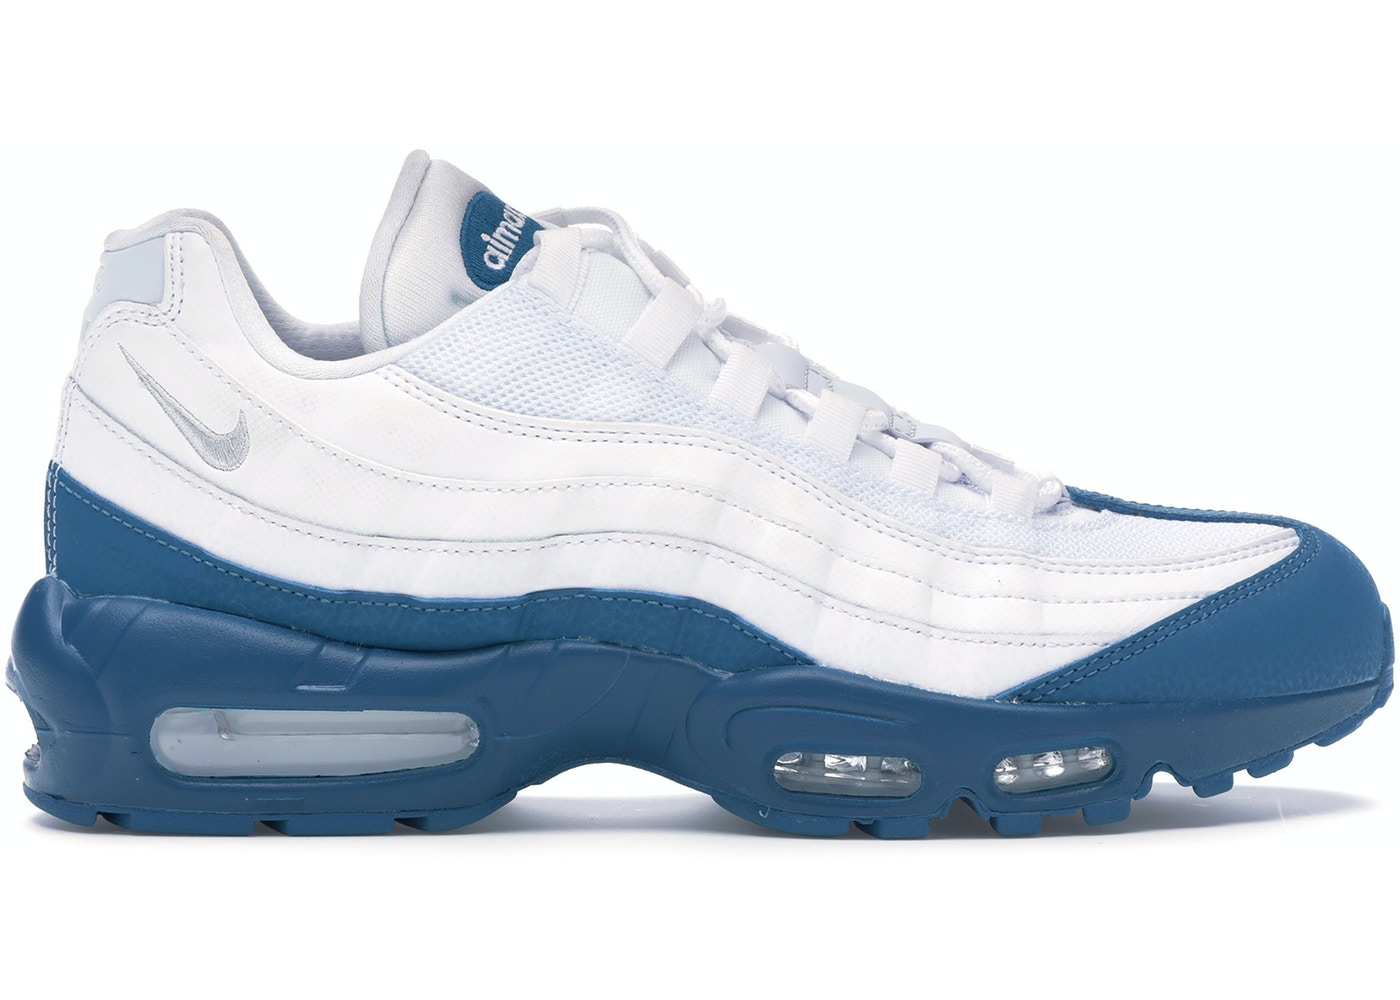 hot sale online 94e97 1cd59 Air Max 95 White Green Abyss